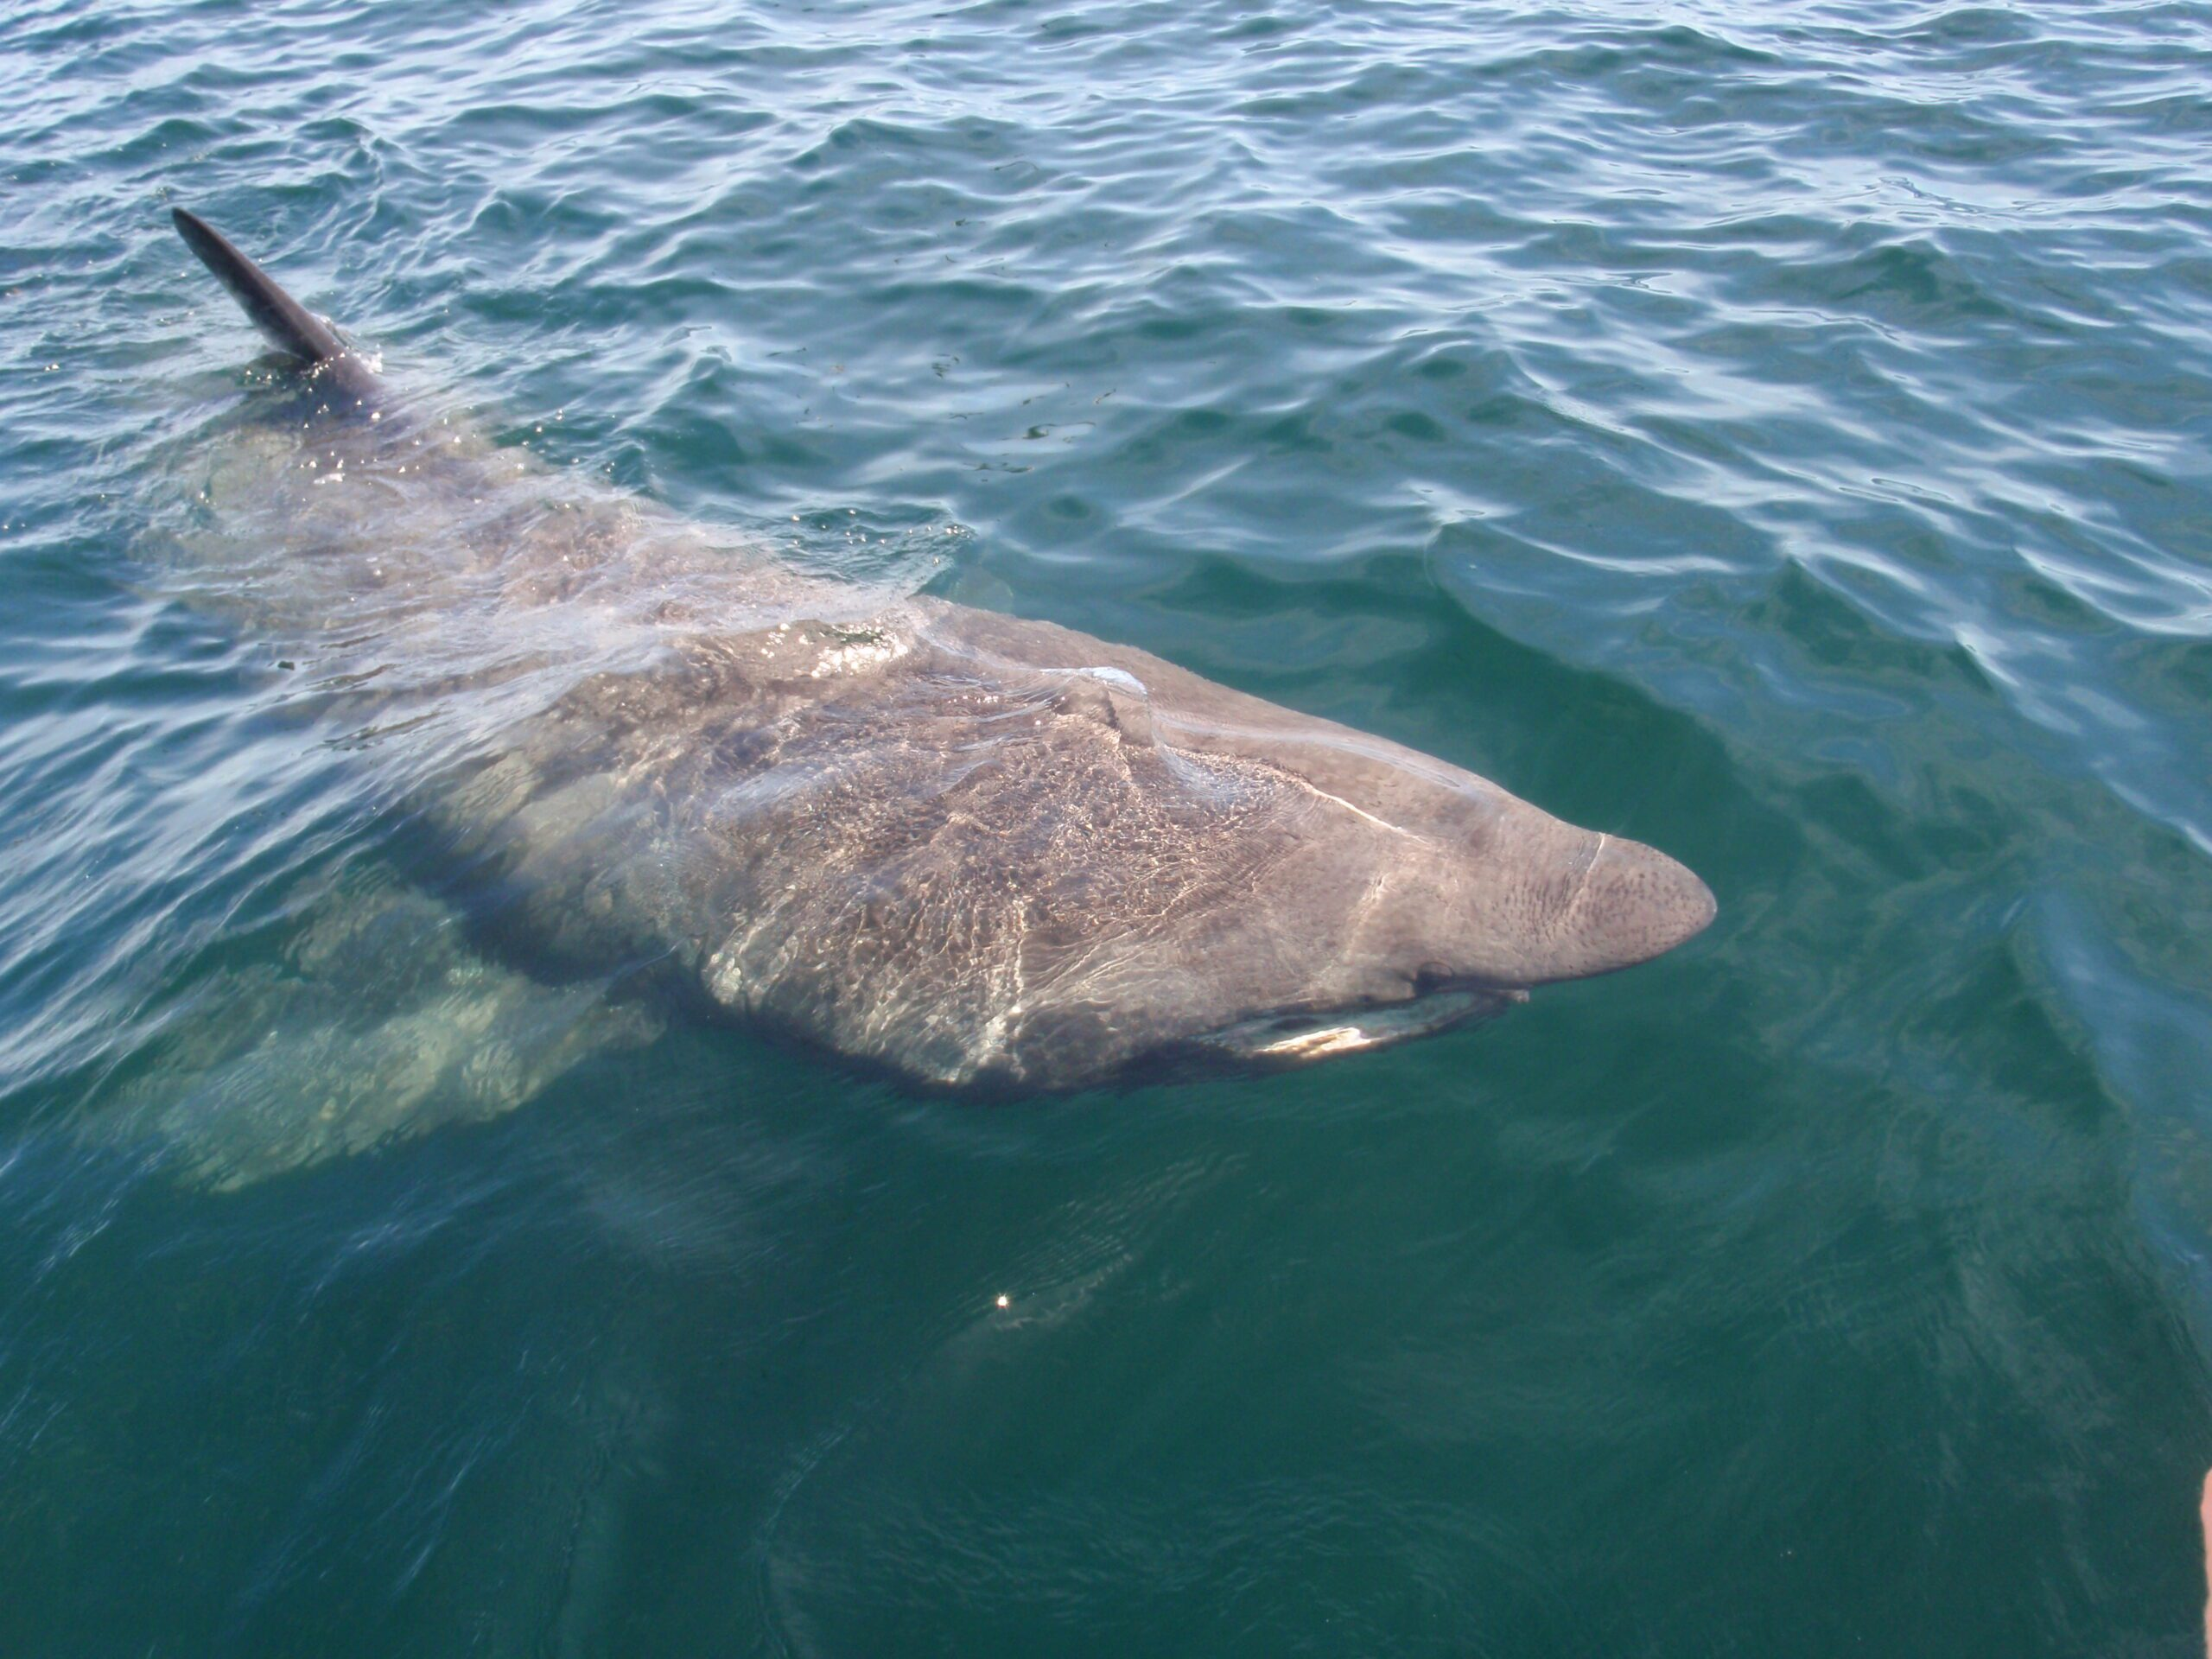 A Basking Shark viewed from above